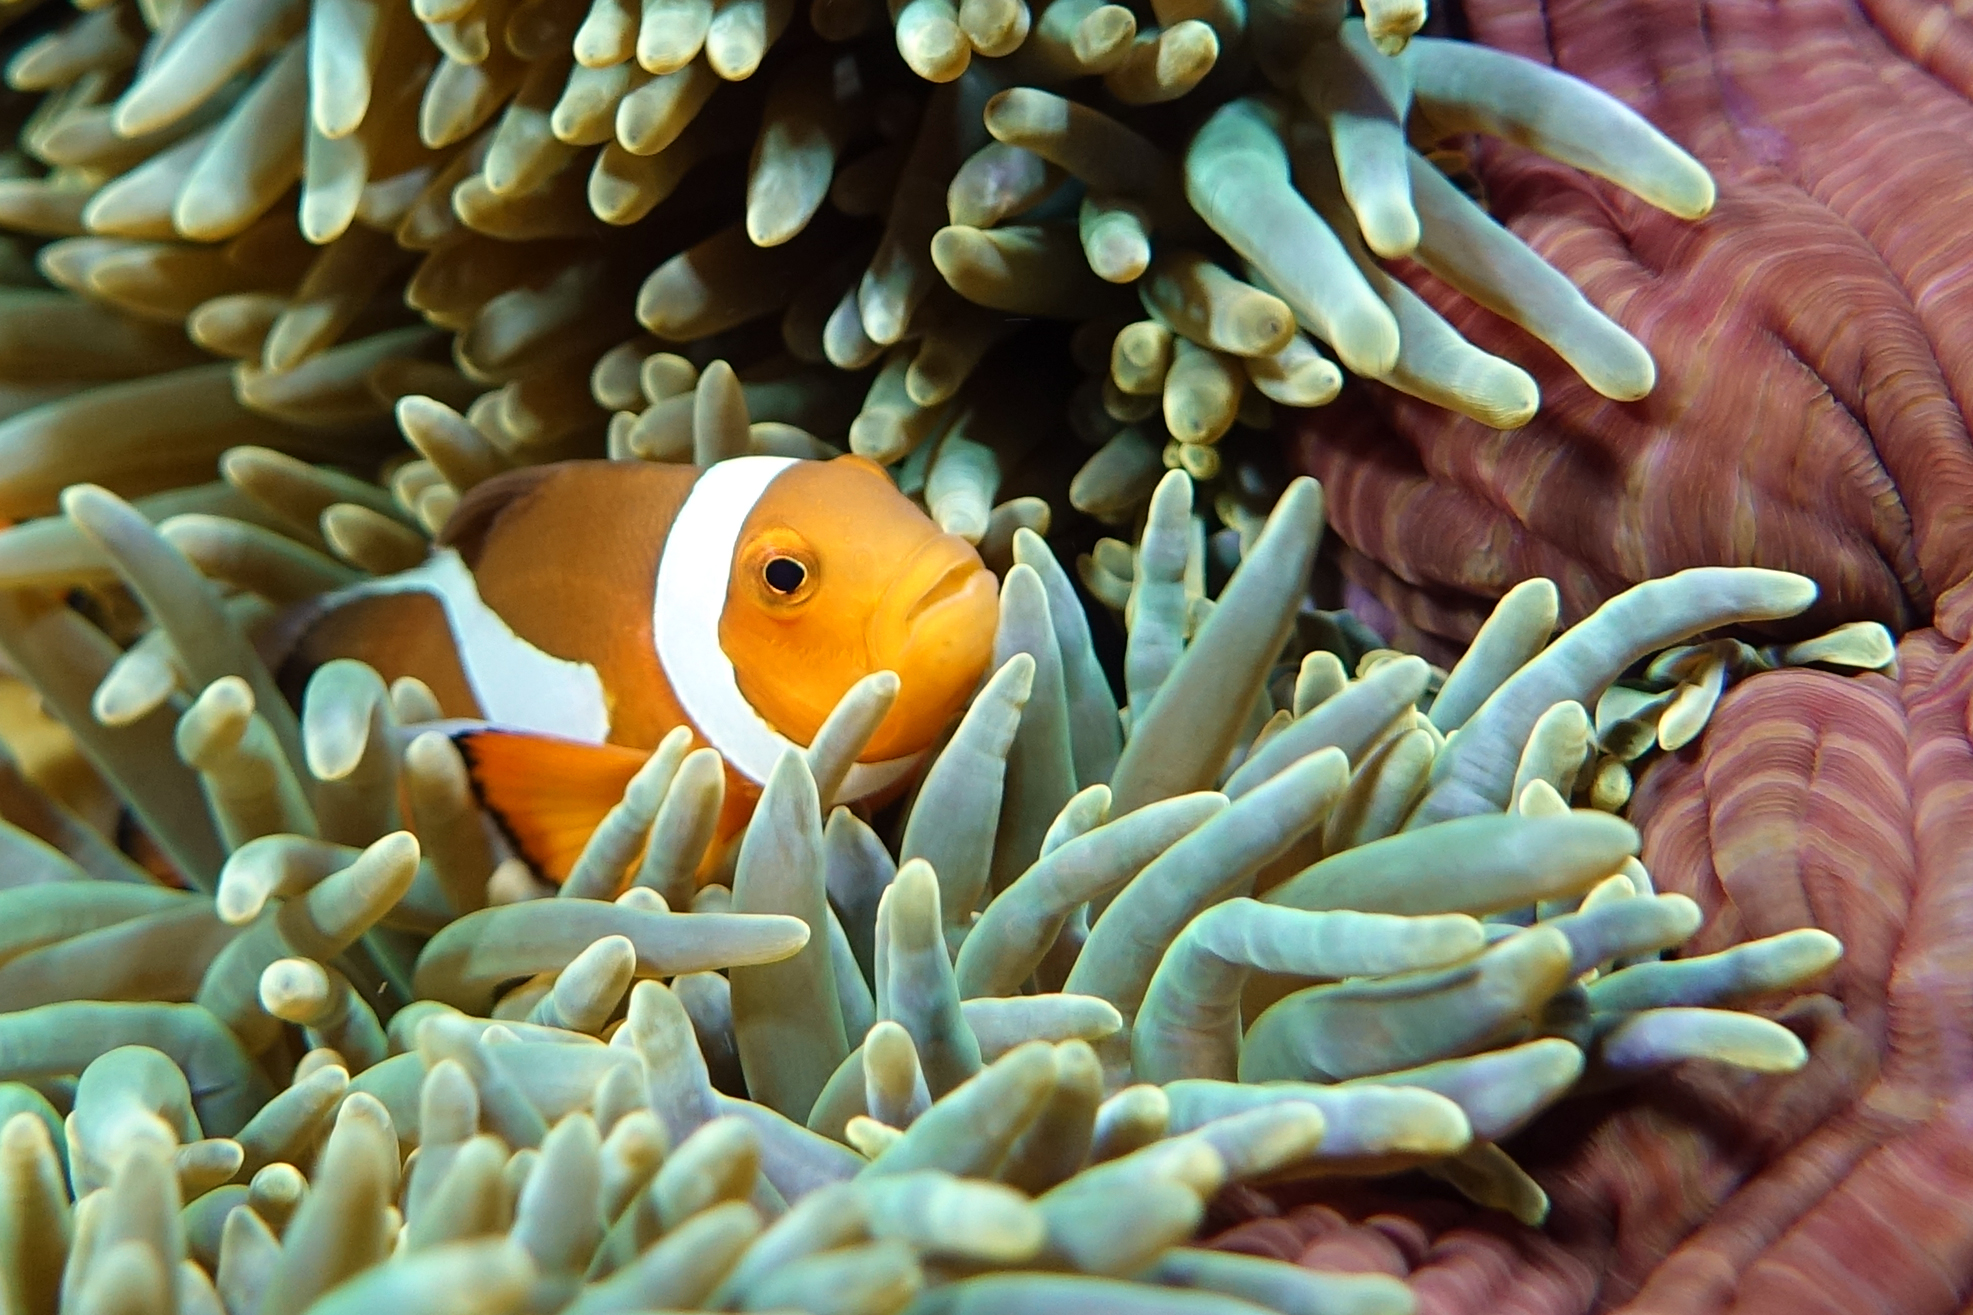 clownfish closeup 2380.jpg